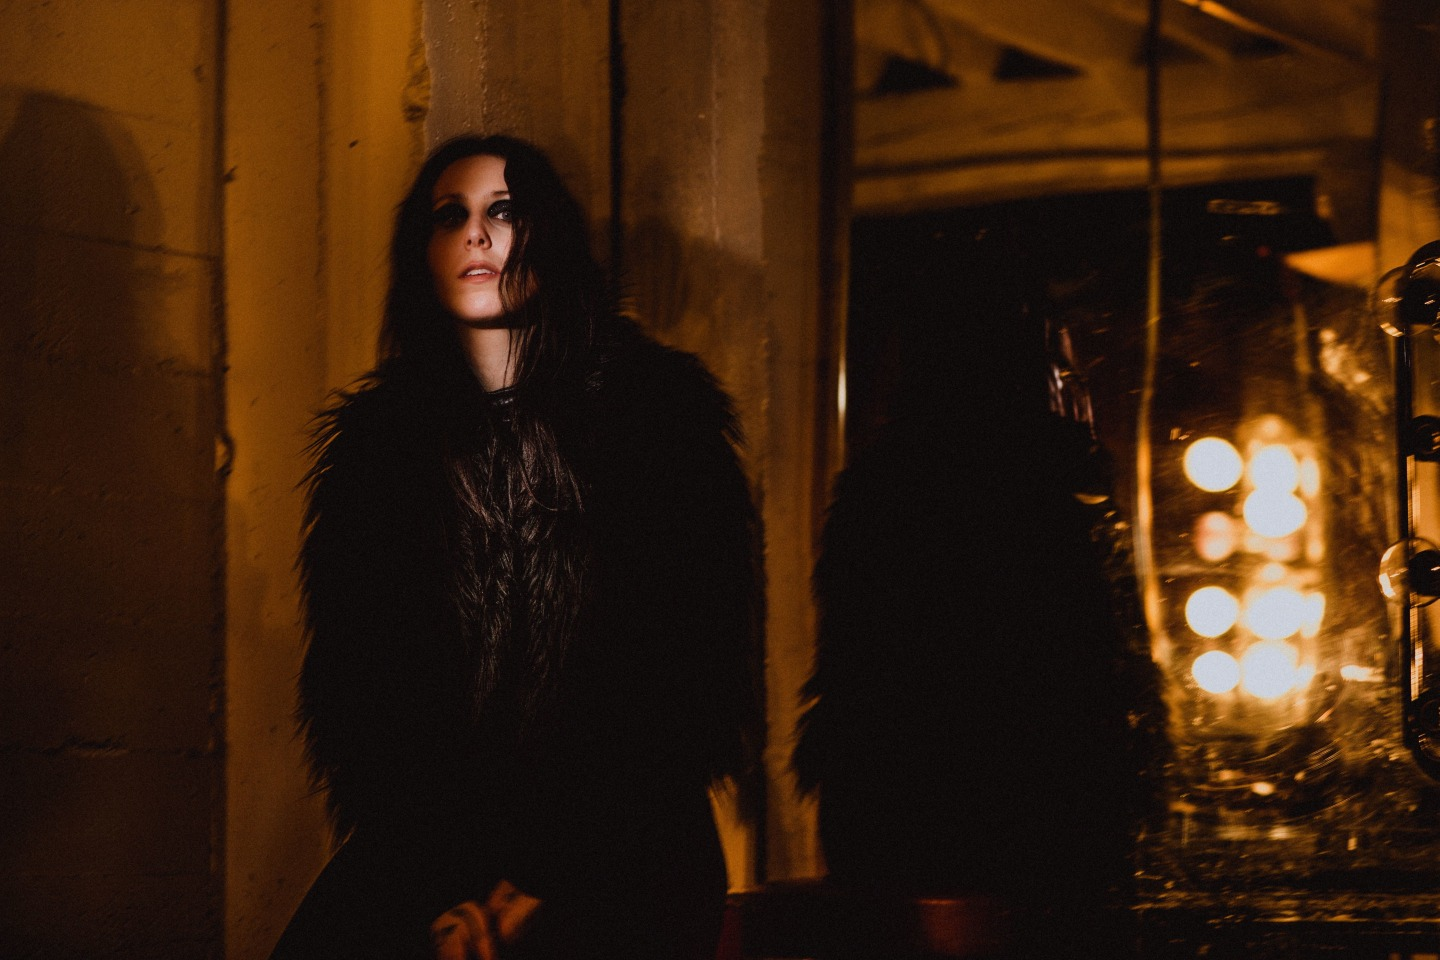 Chelsea Wolfe explains her 5 favorite metal albums